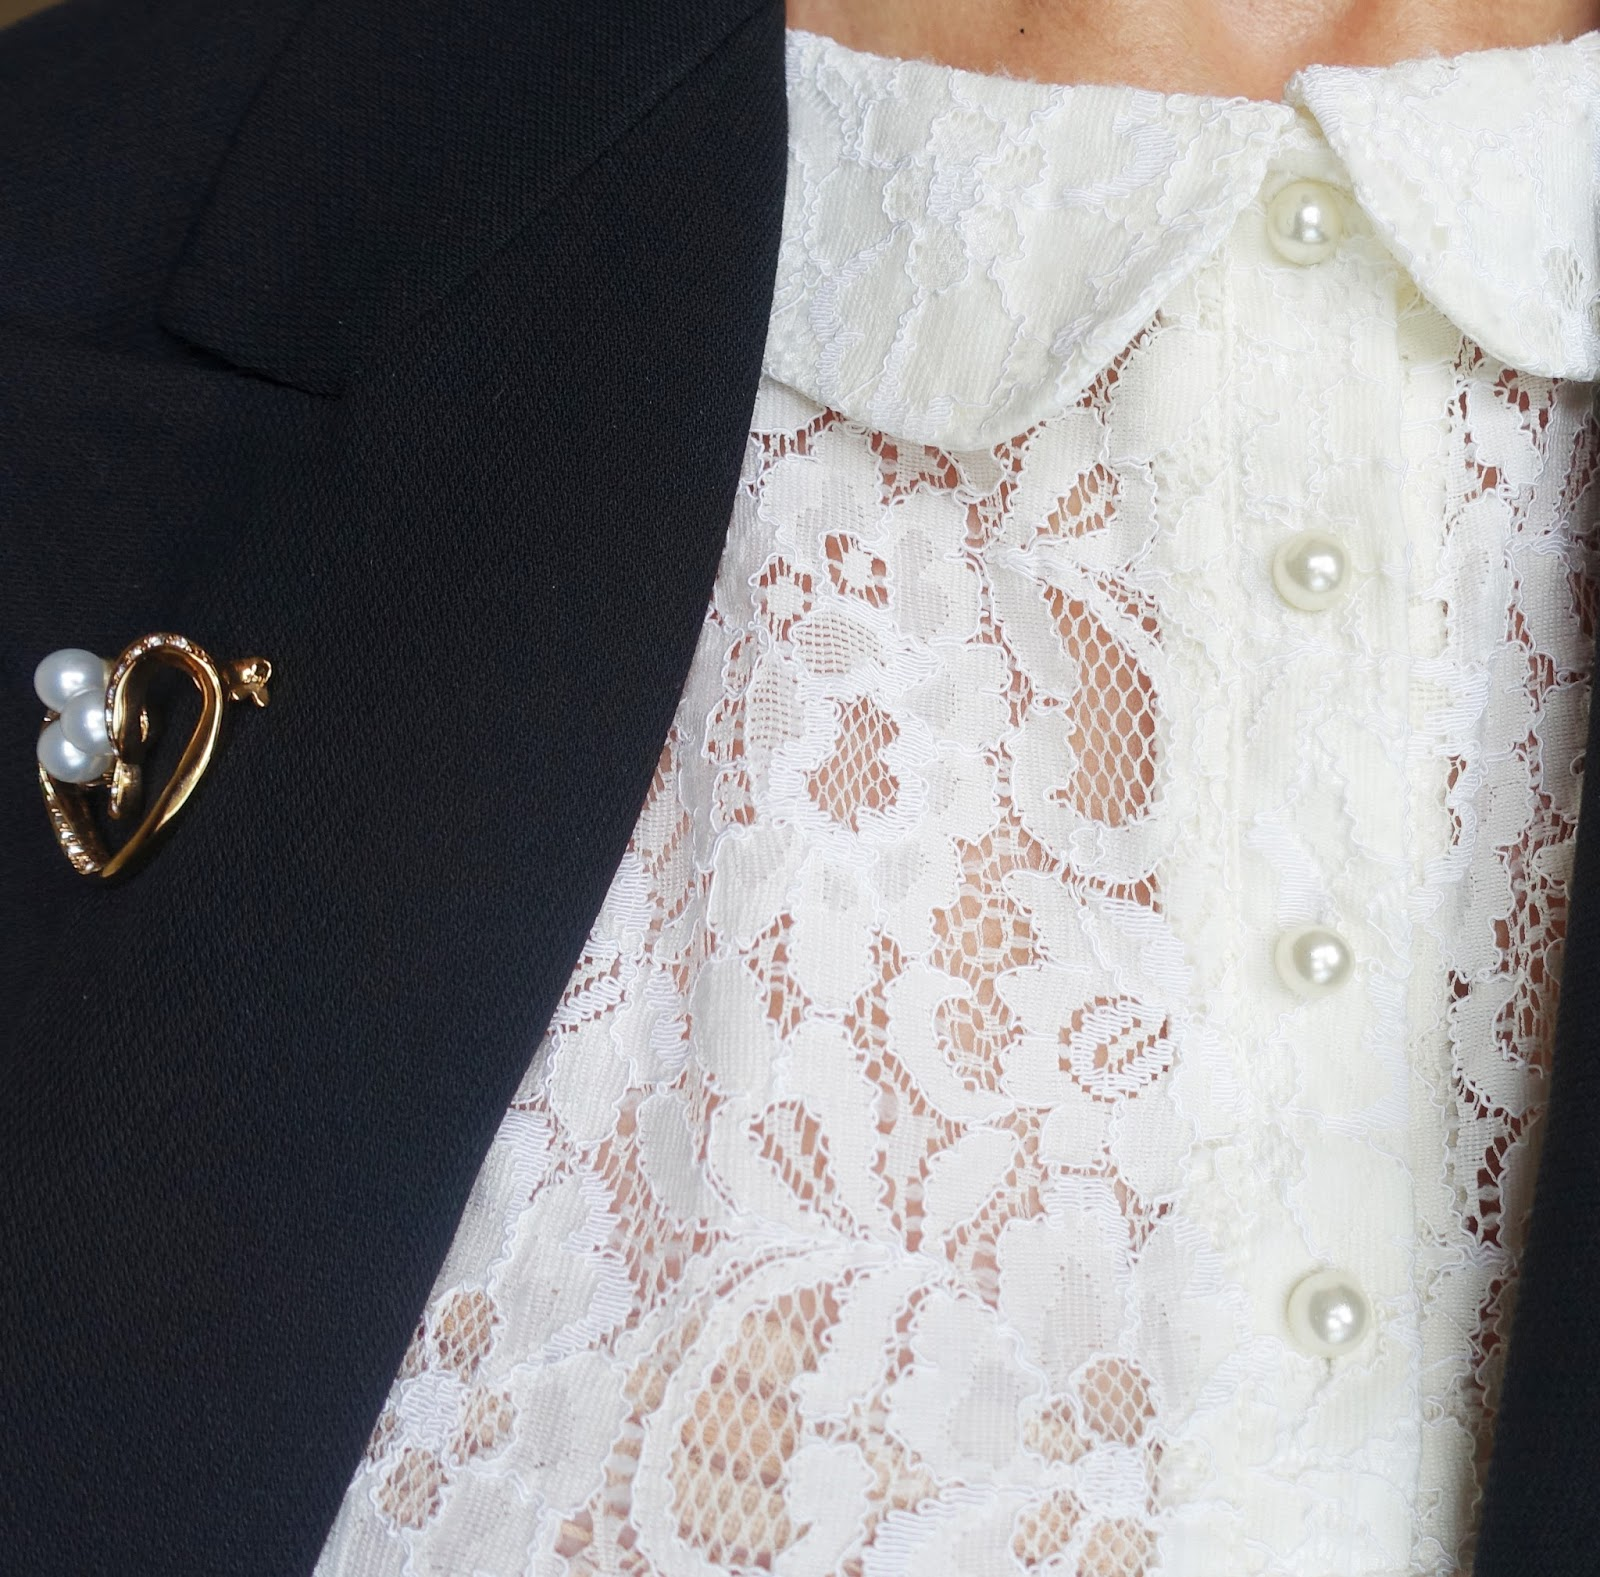 Pearl brooch and cream lace blouse with pearl buttons worn by Is This Mutton